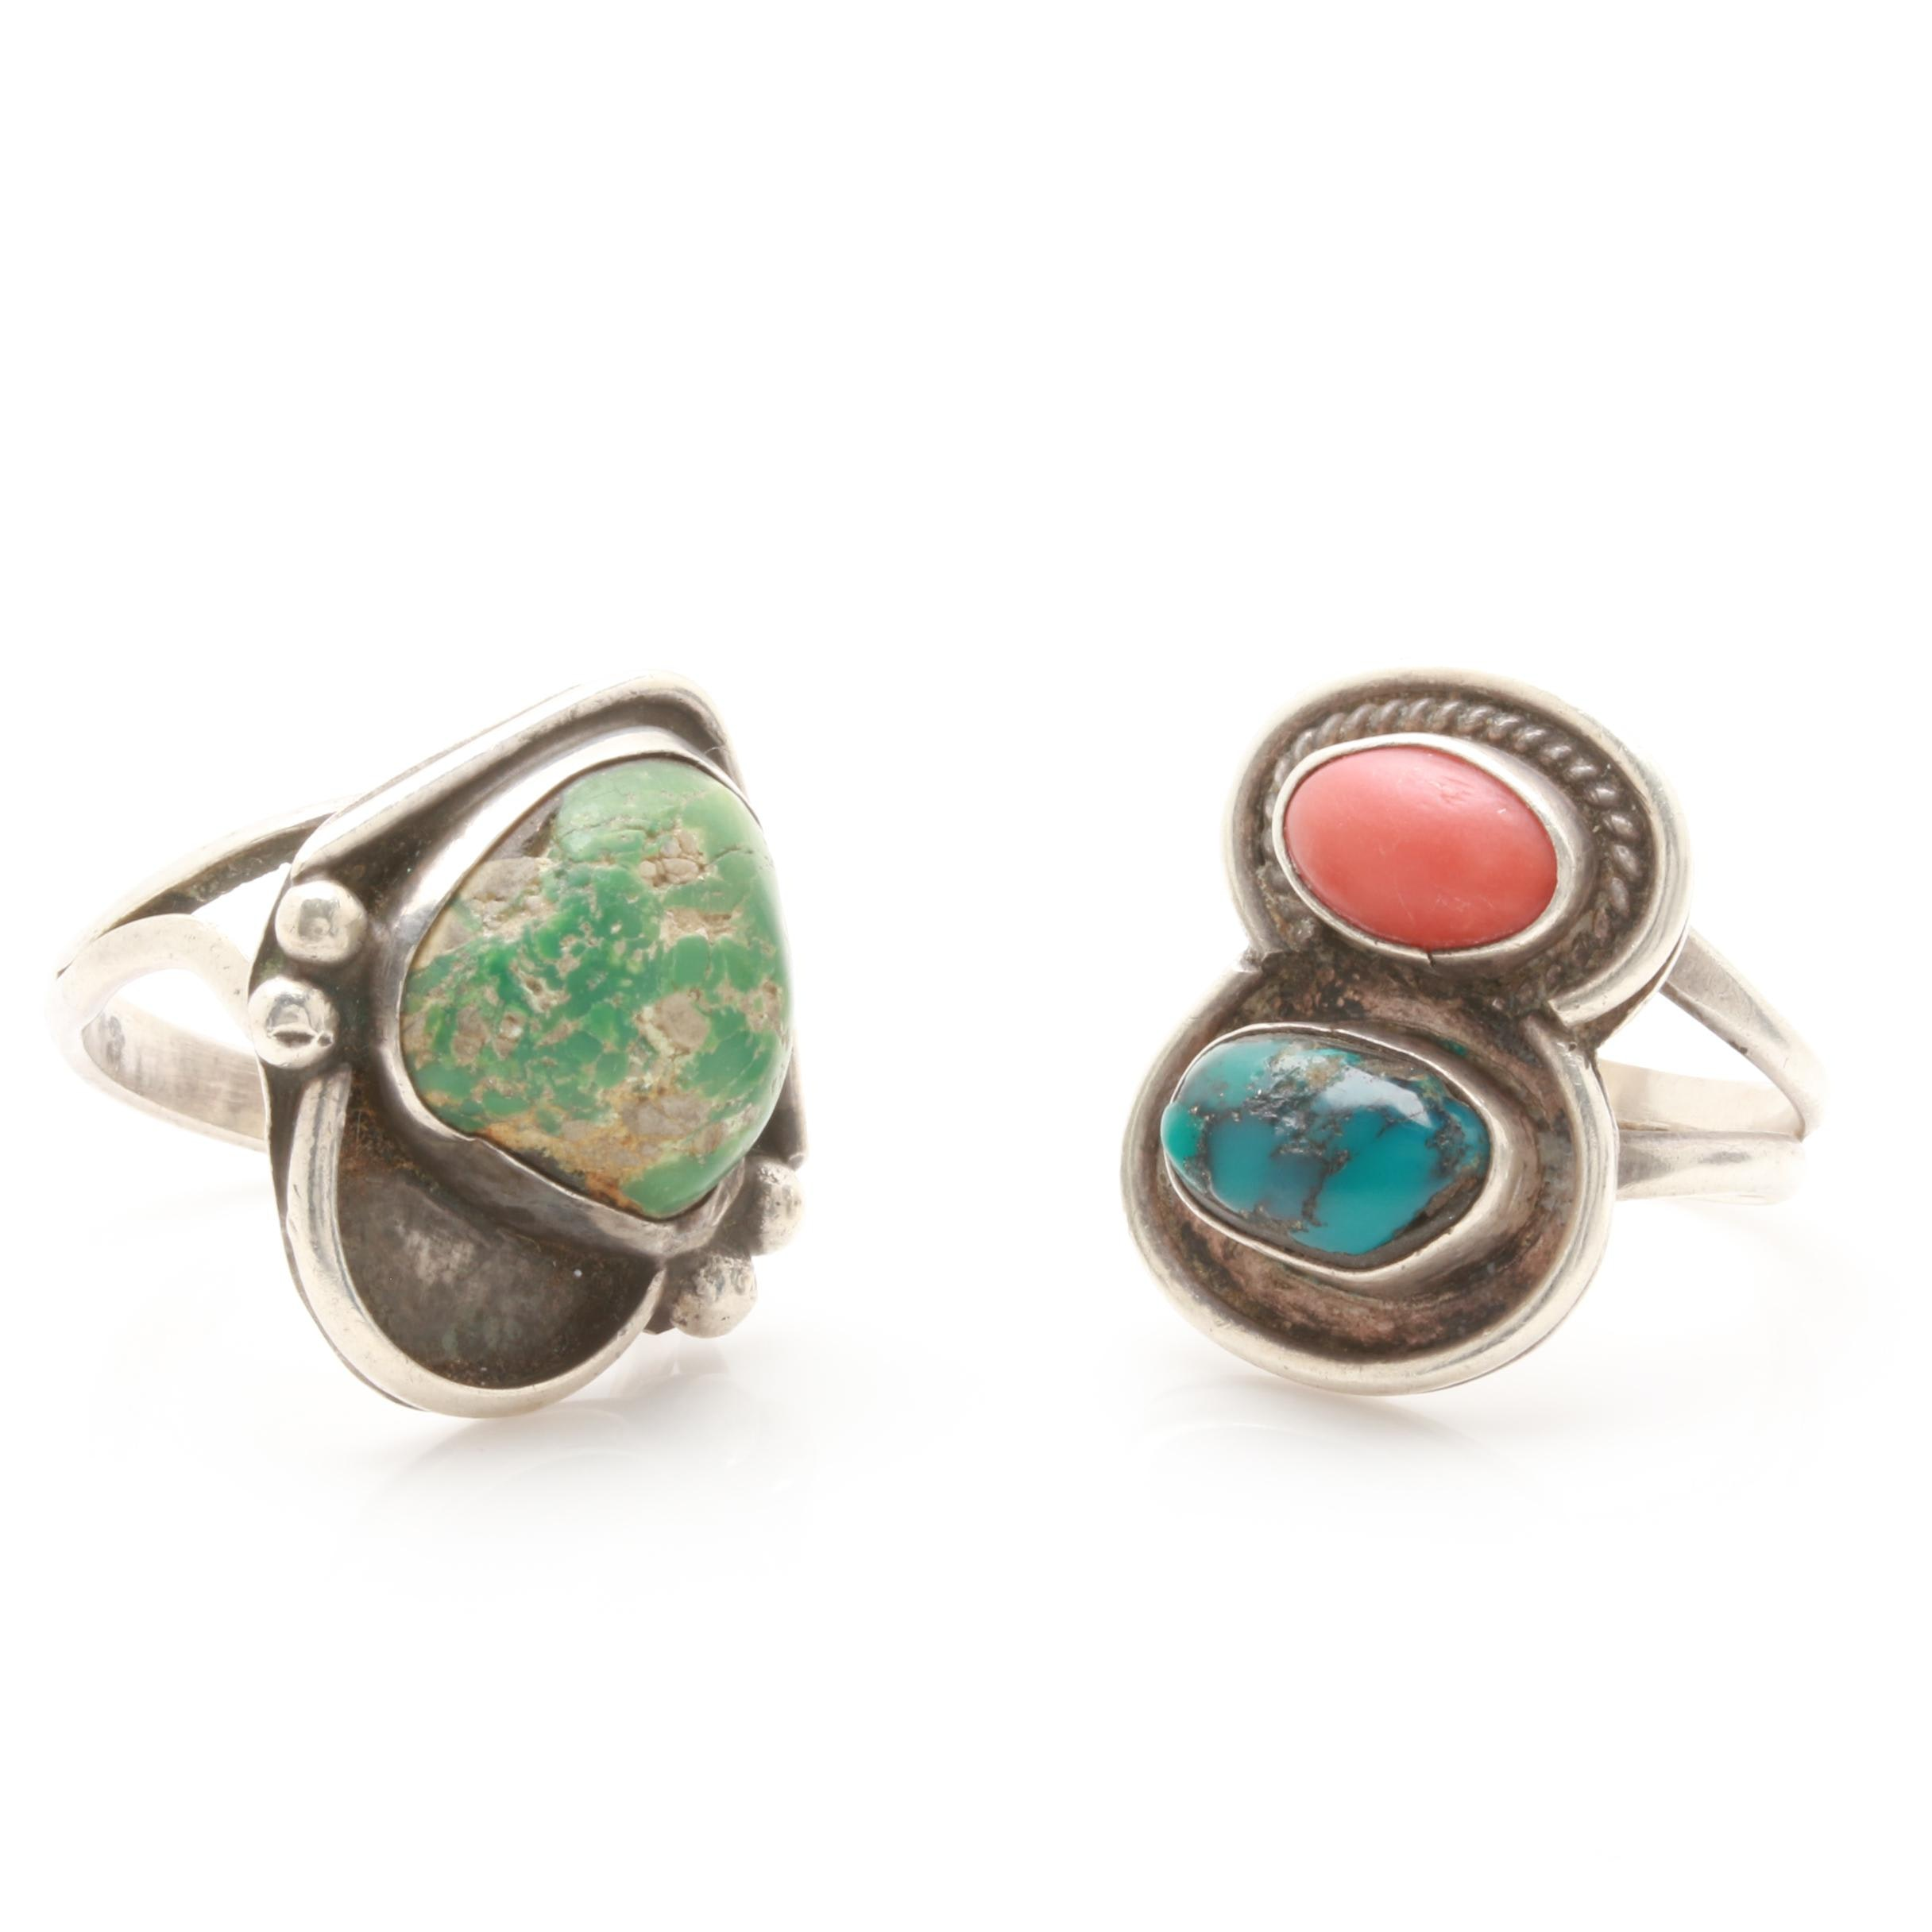 Vintage Southwestern Styled Turquoise and Coral Rings